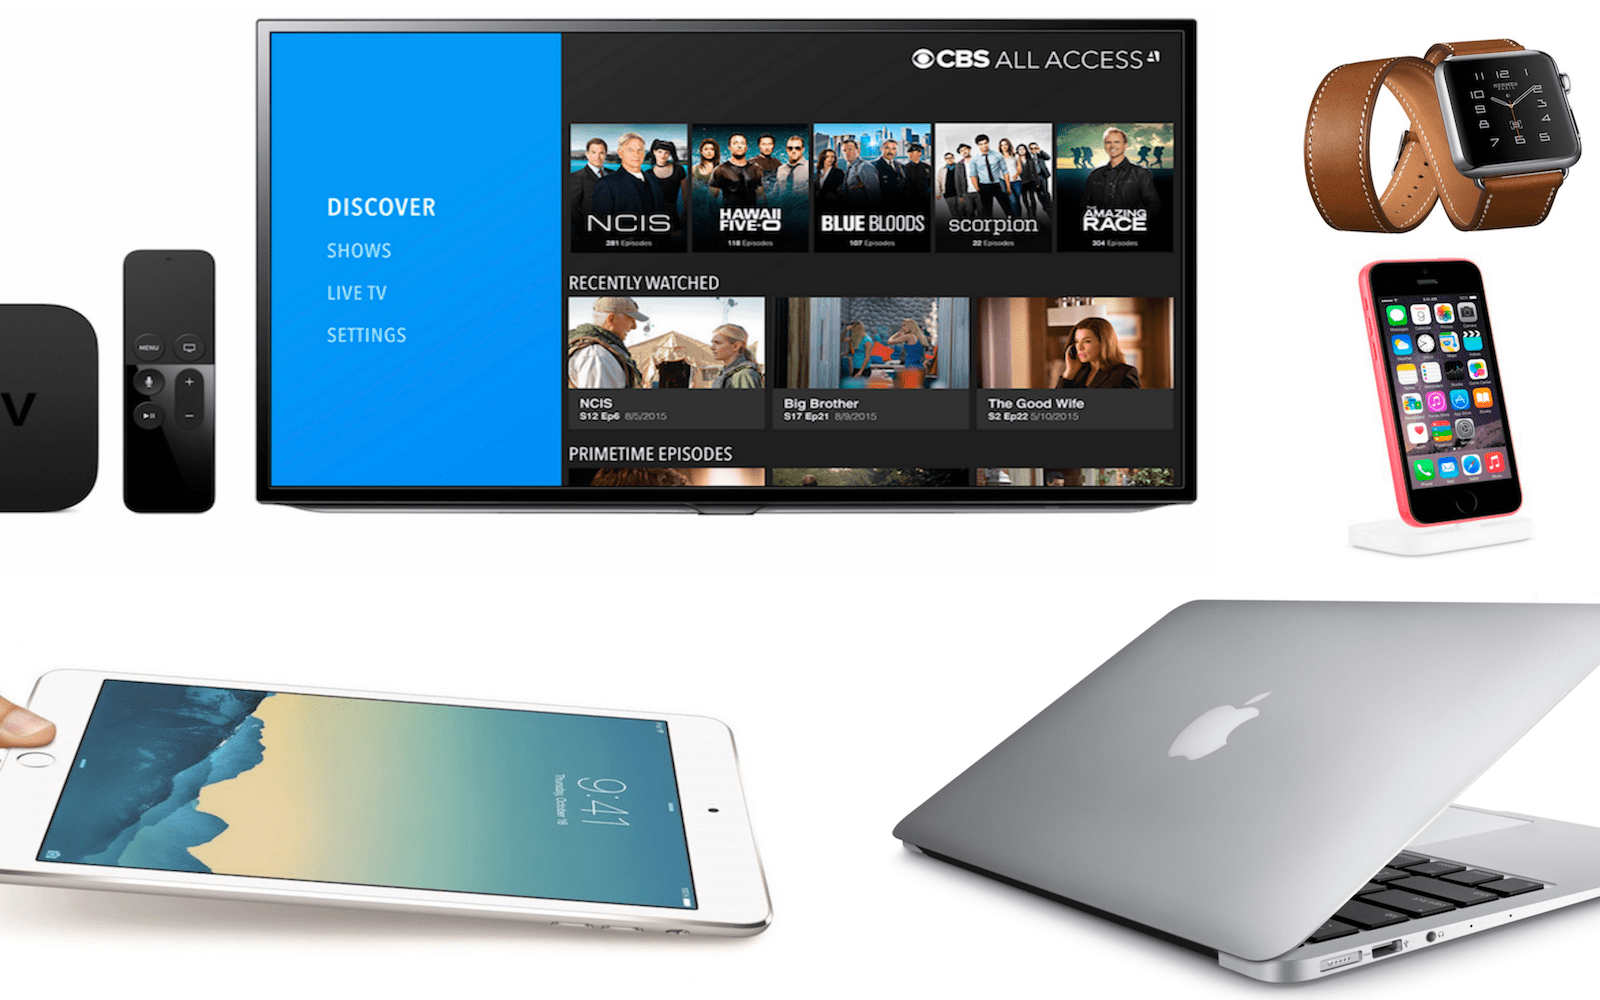 Apple in 2016: What we expect from new iPhones, iPads, Macs, & Apple Watch this year